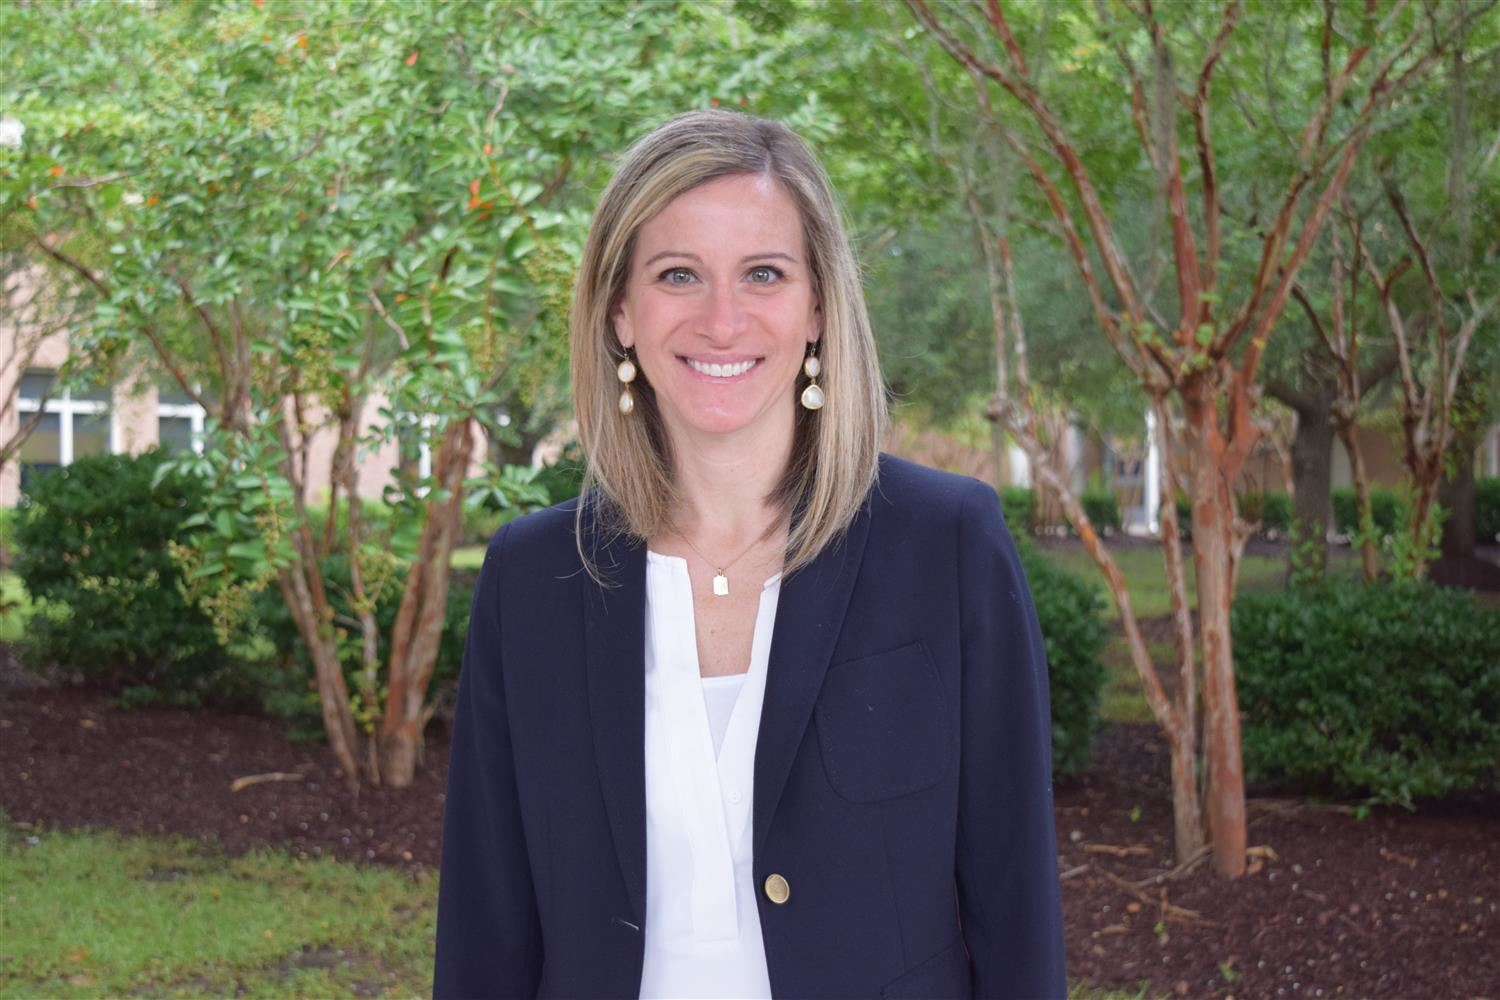 Gayle Morris Named Principal at Thomas C. Cario Middle School